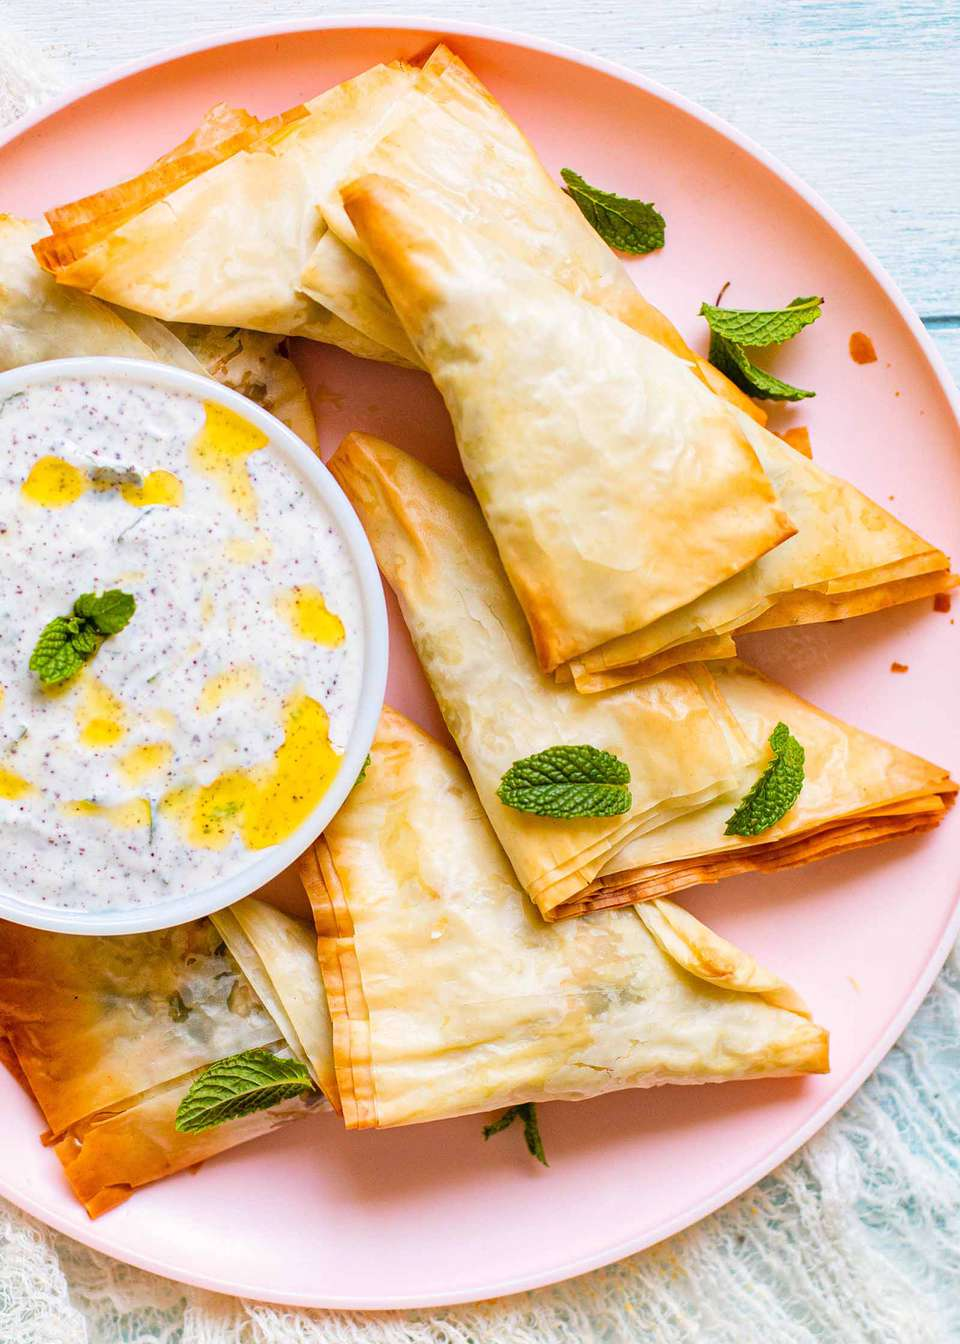 Baked Chicken Samosa folded into a triangle with Mint Yogurt Dip on a pink plate